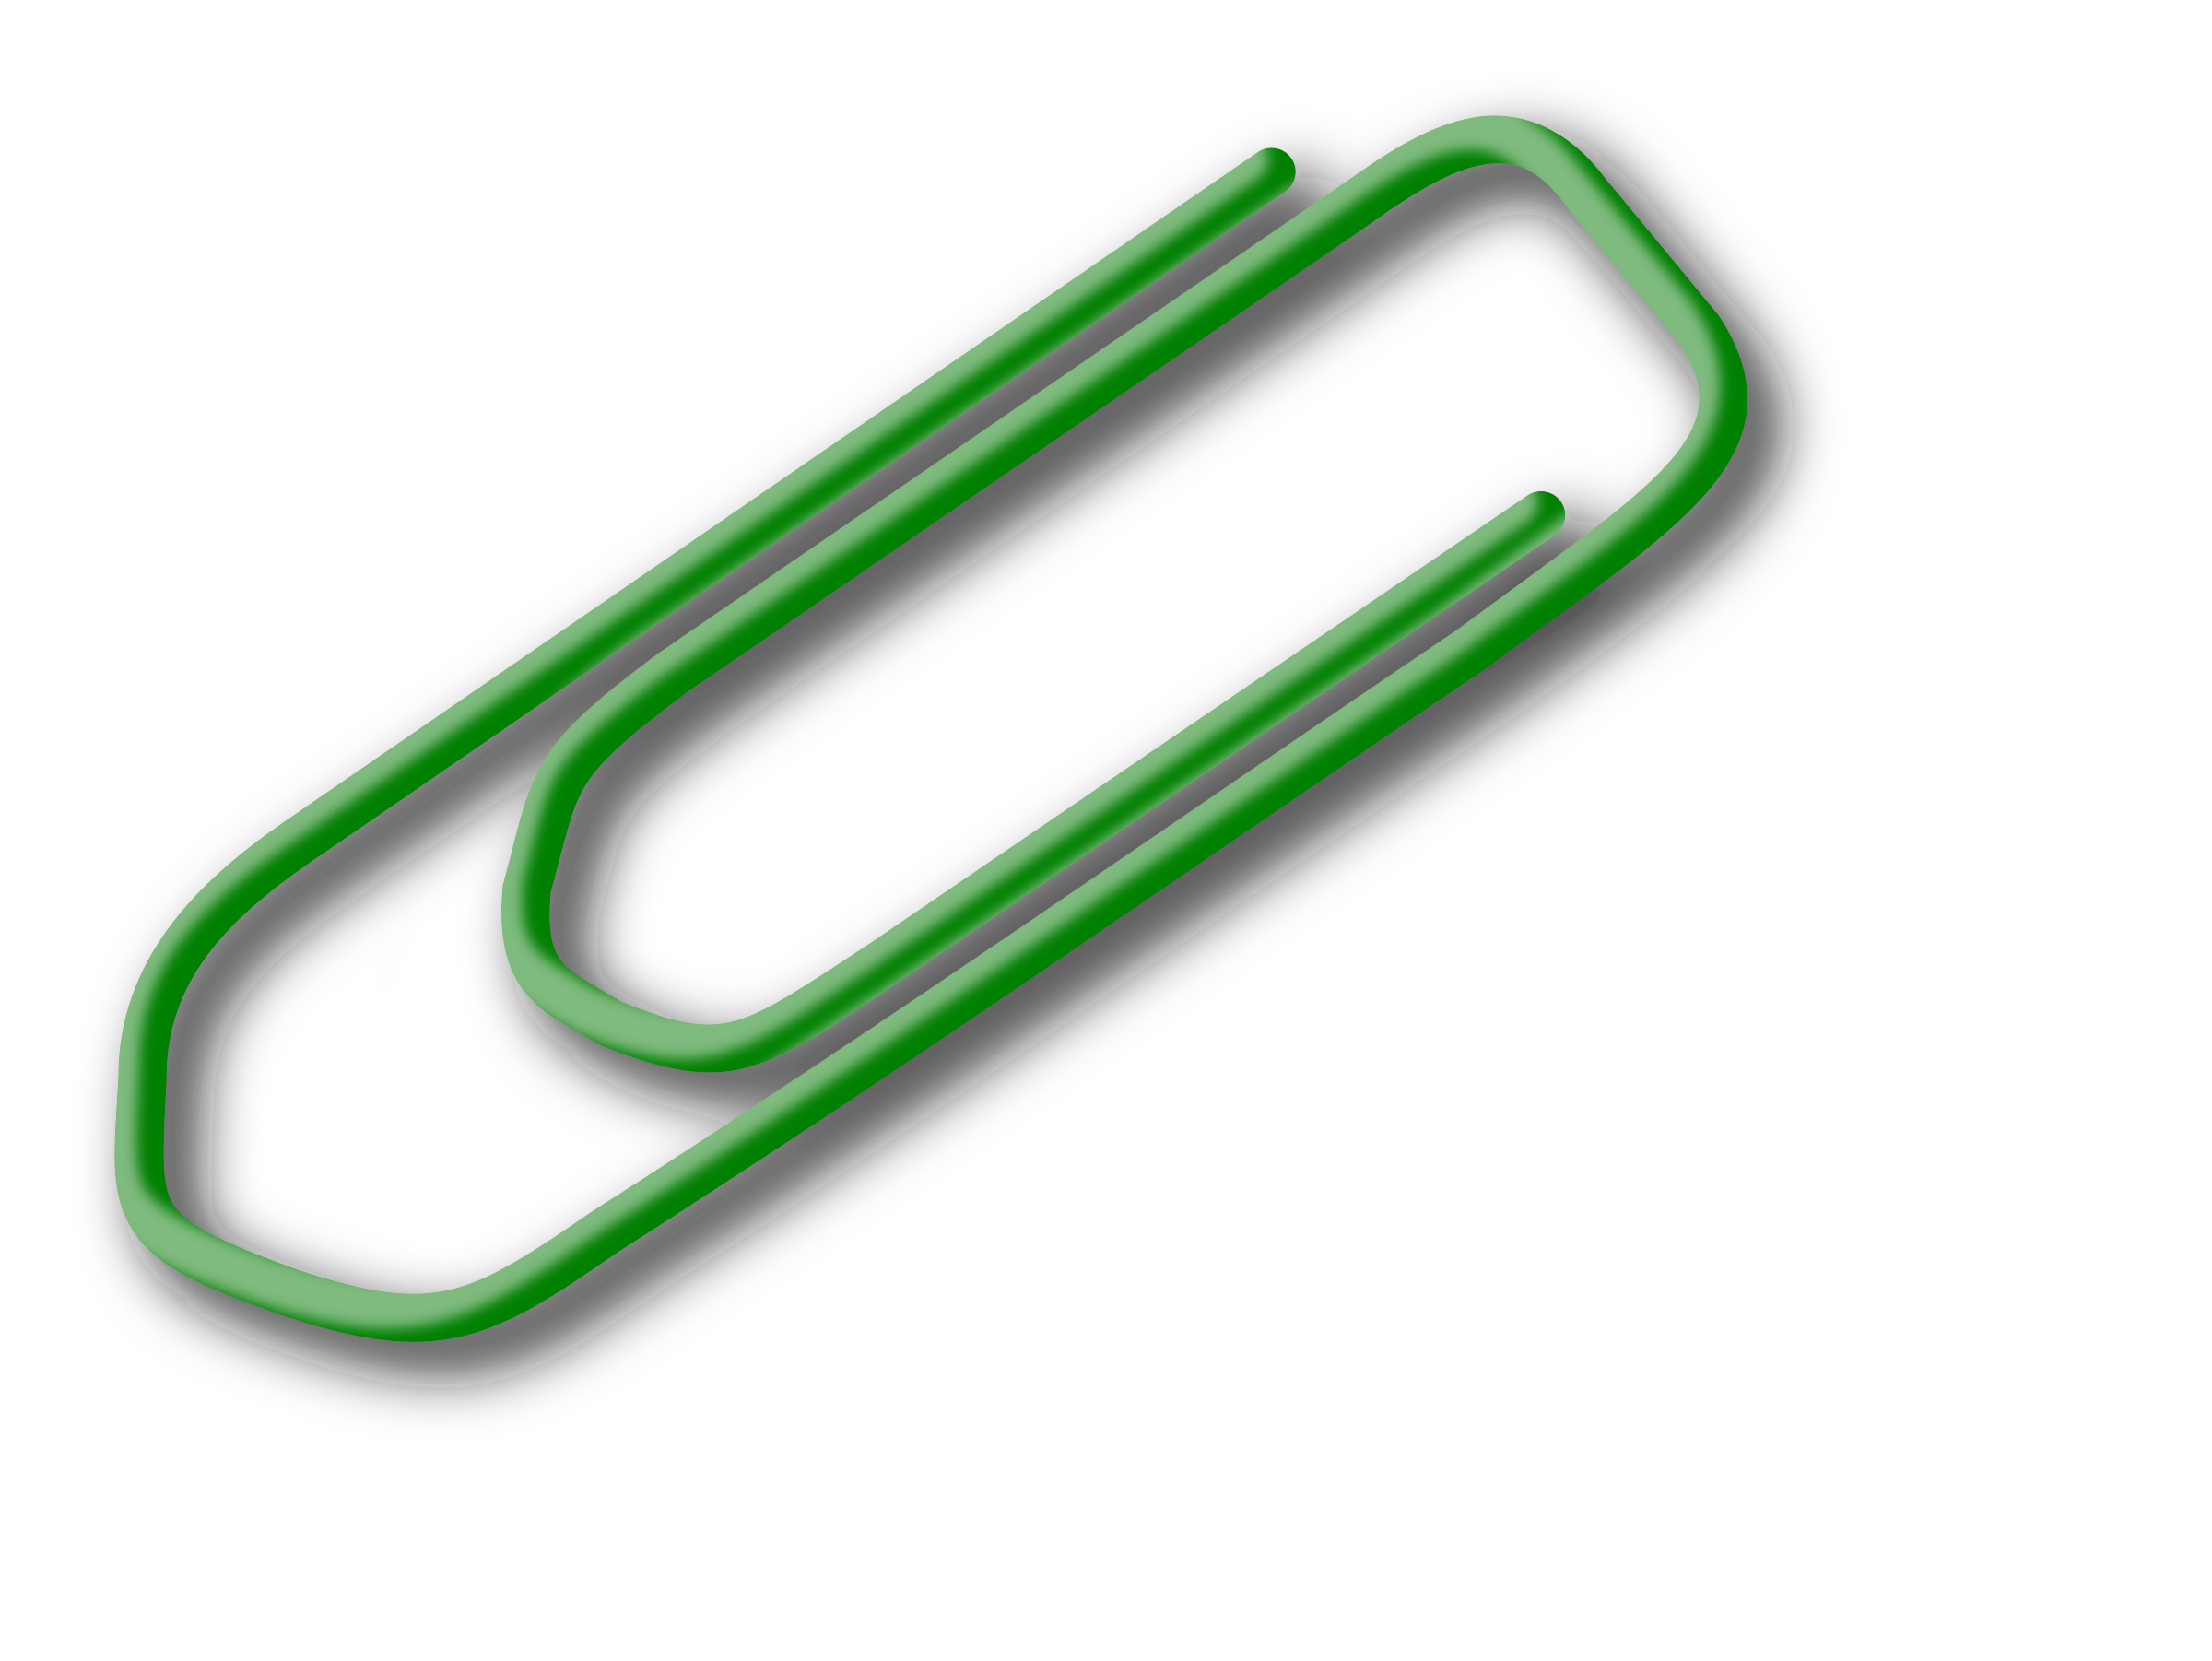 clipart - green paperclip